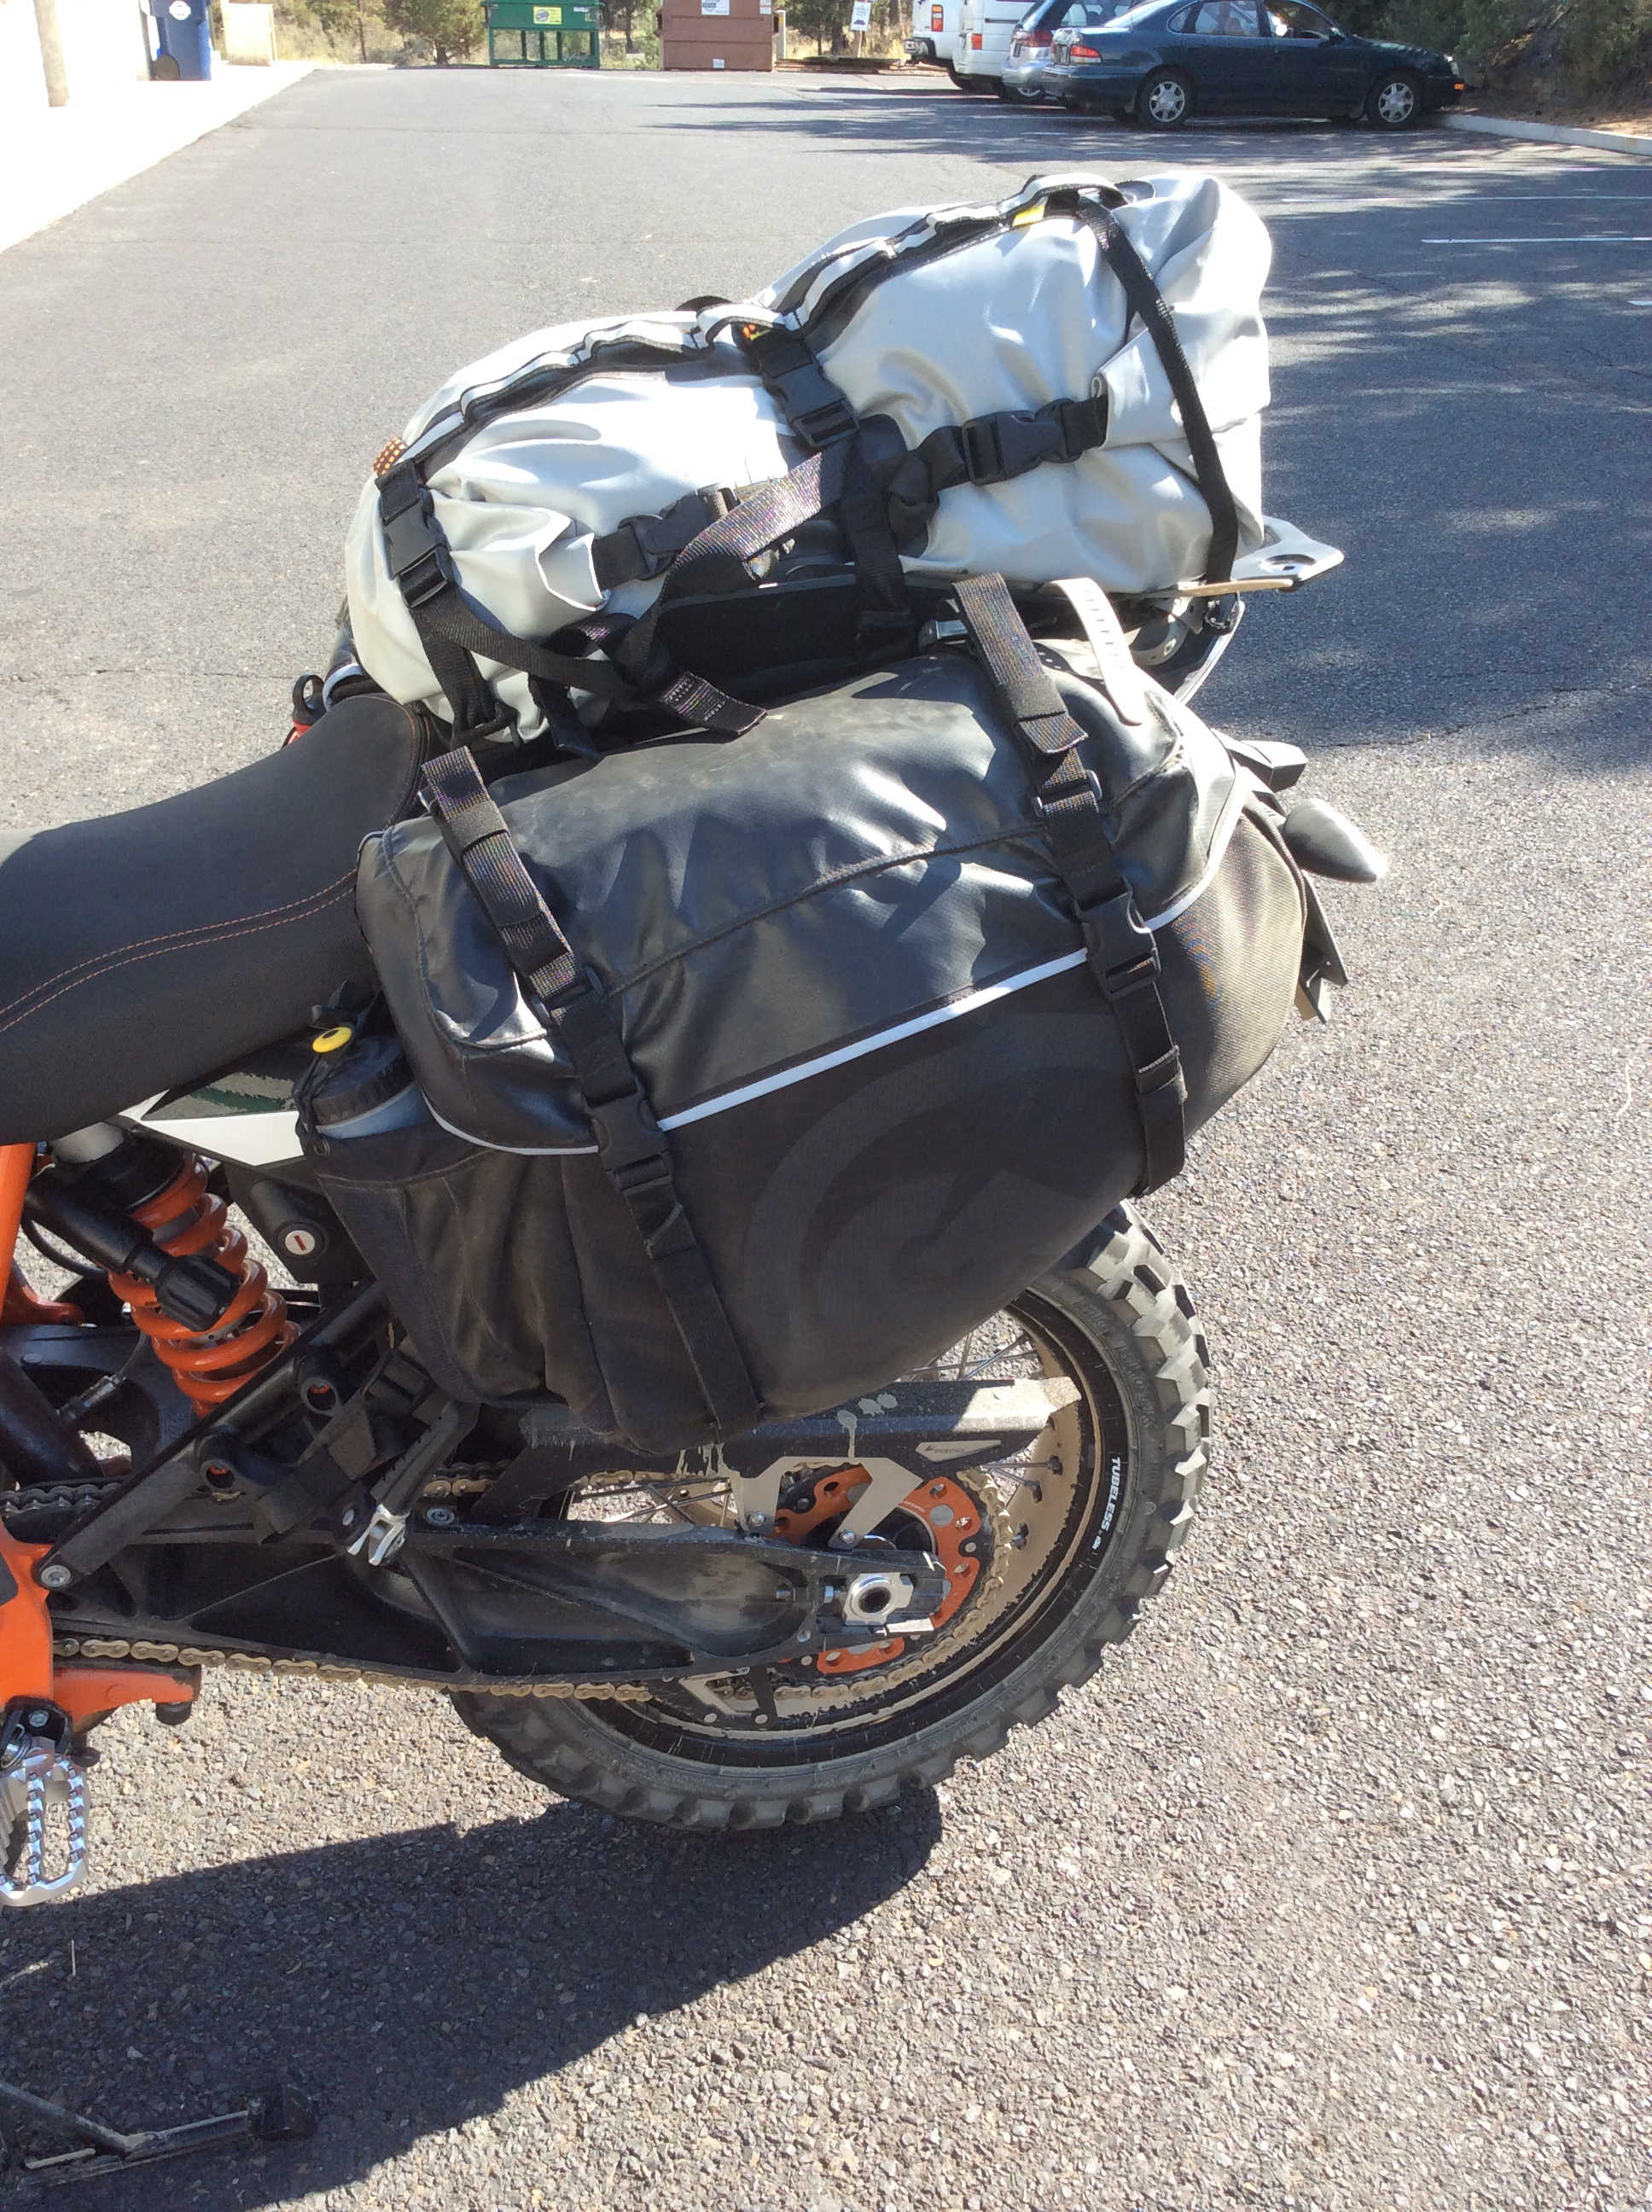 tech tip: siskiyou panniers on ktm 1190 adventure r - rackless